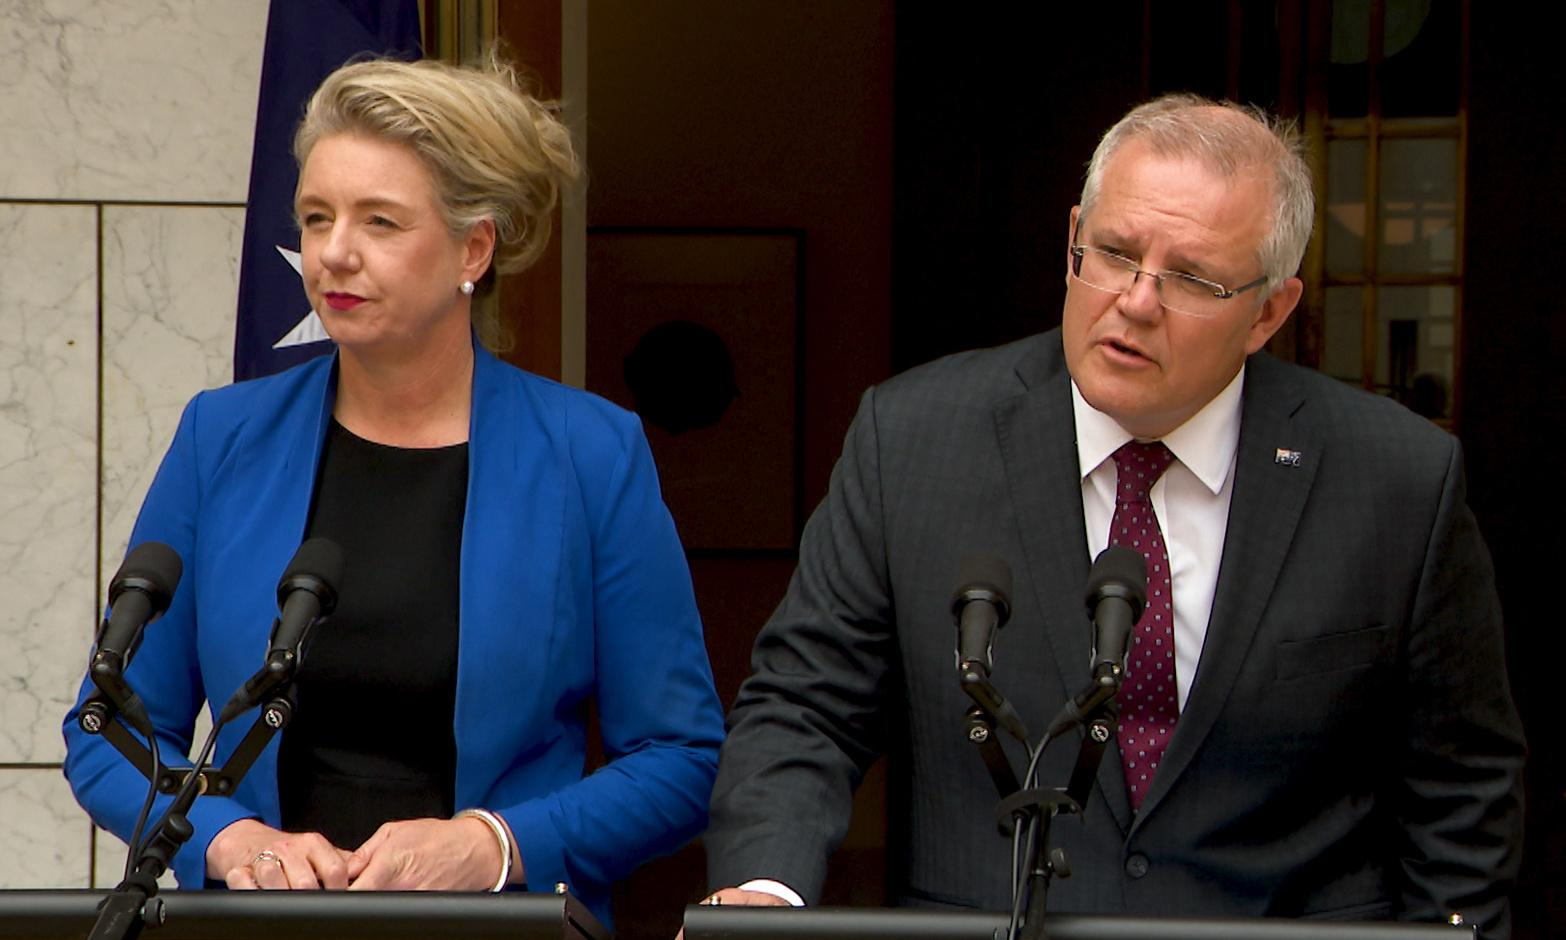 Scott Morrison backs Bridget McKenzie in sports grants scandal and will 'clarify' legal issues